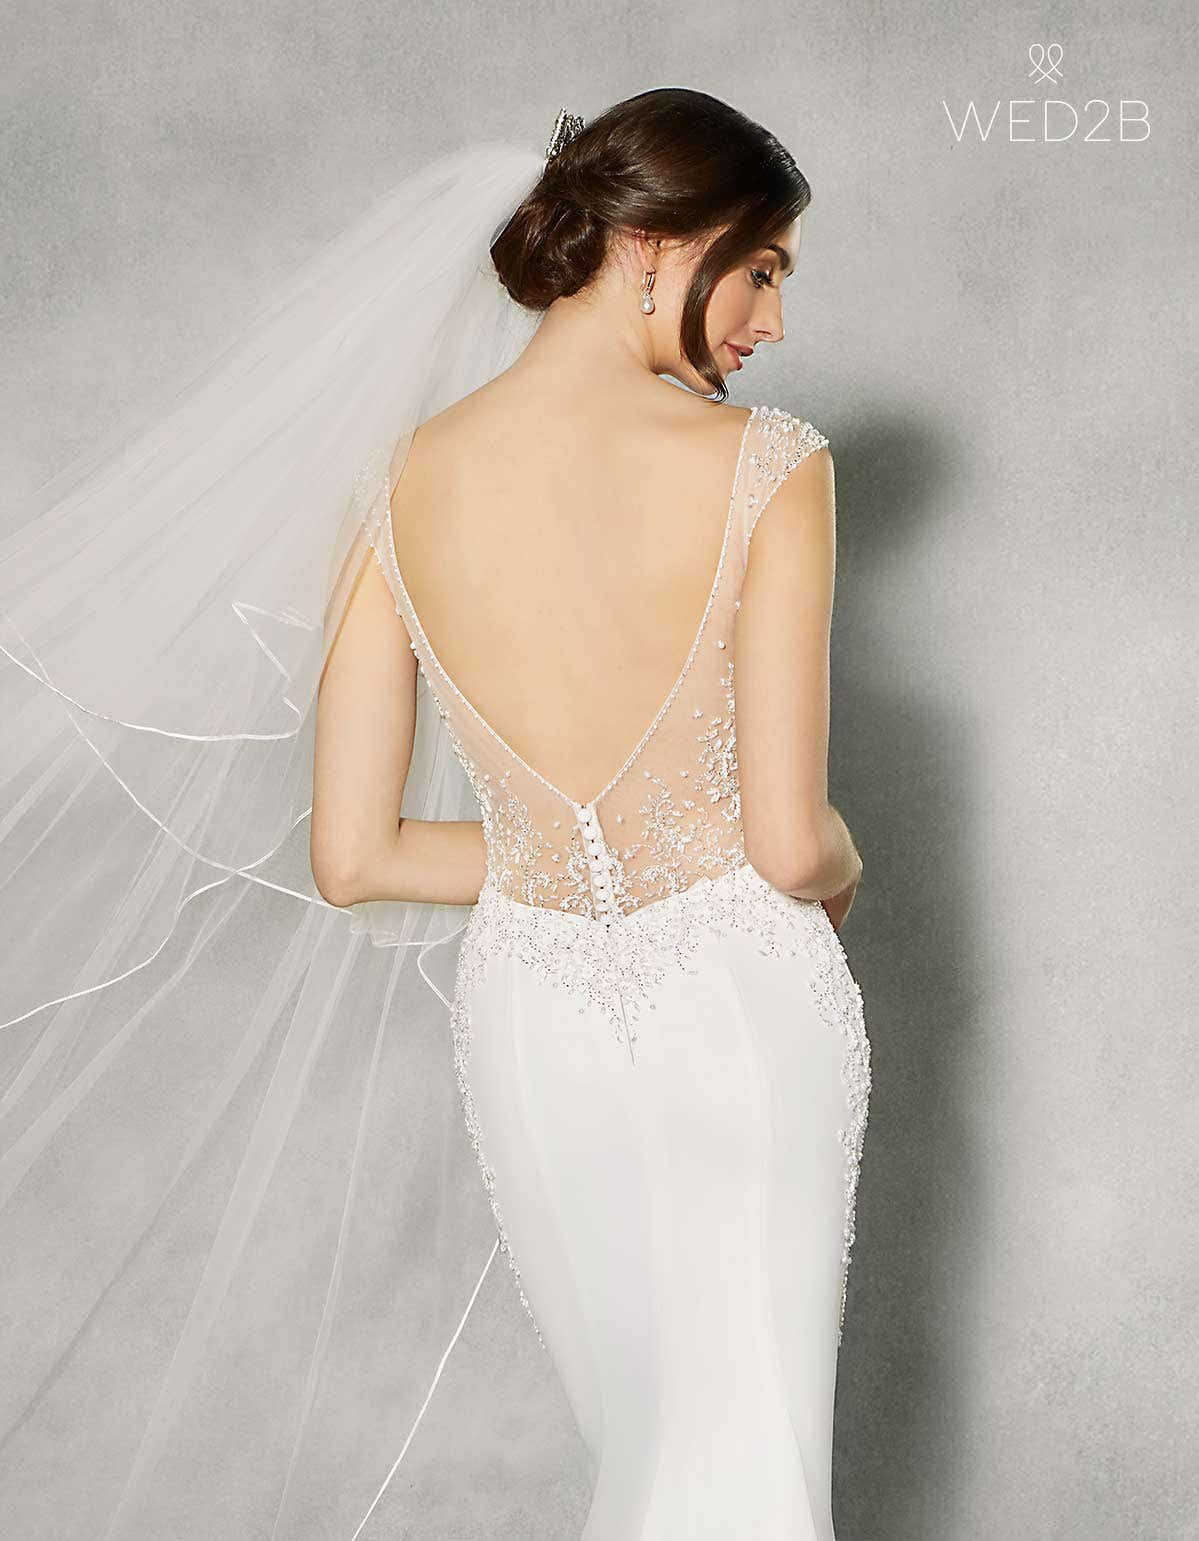 bdf8eb3c659 The essential guide to low back wedding dresses | WED2B UK BLOG